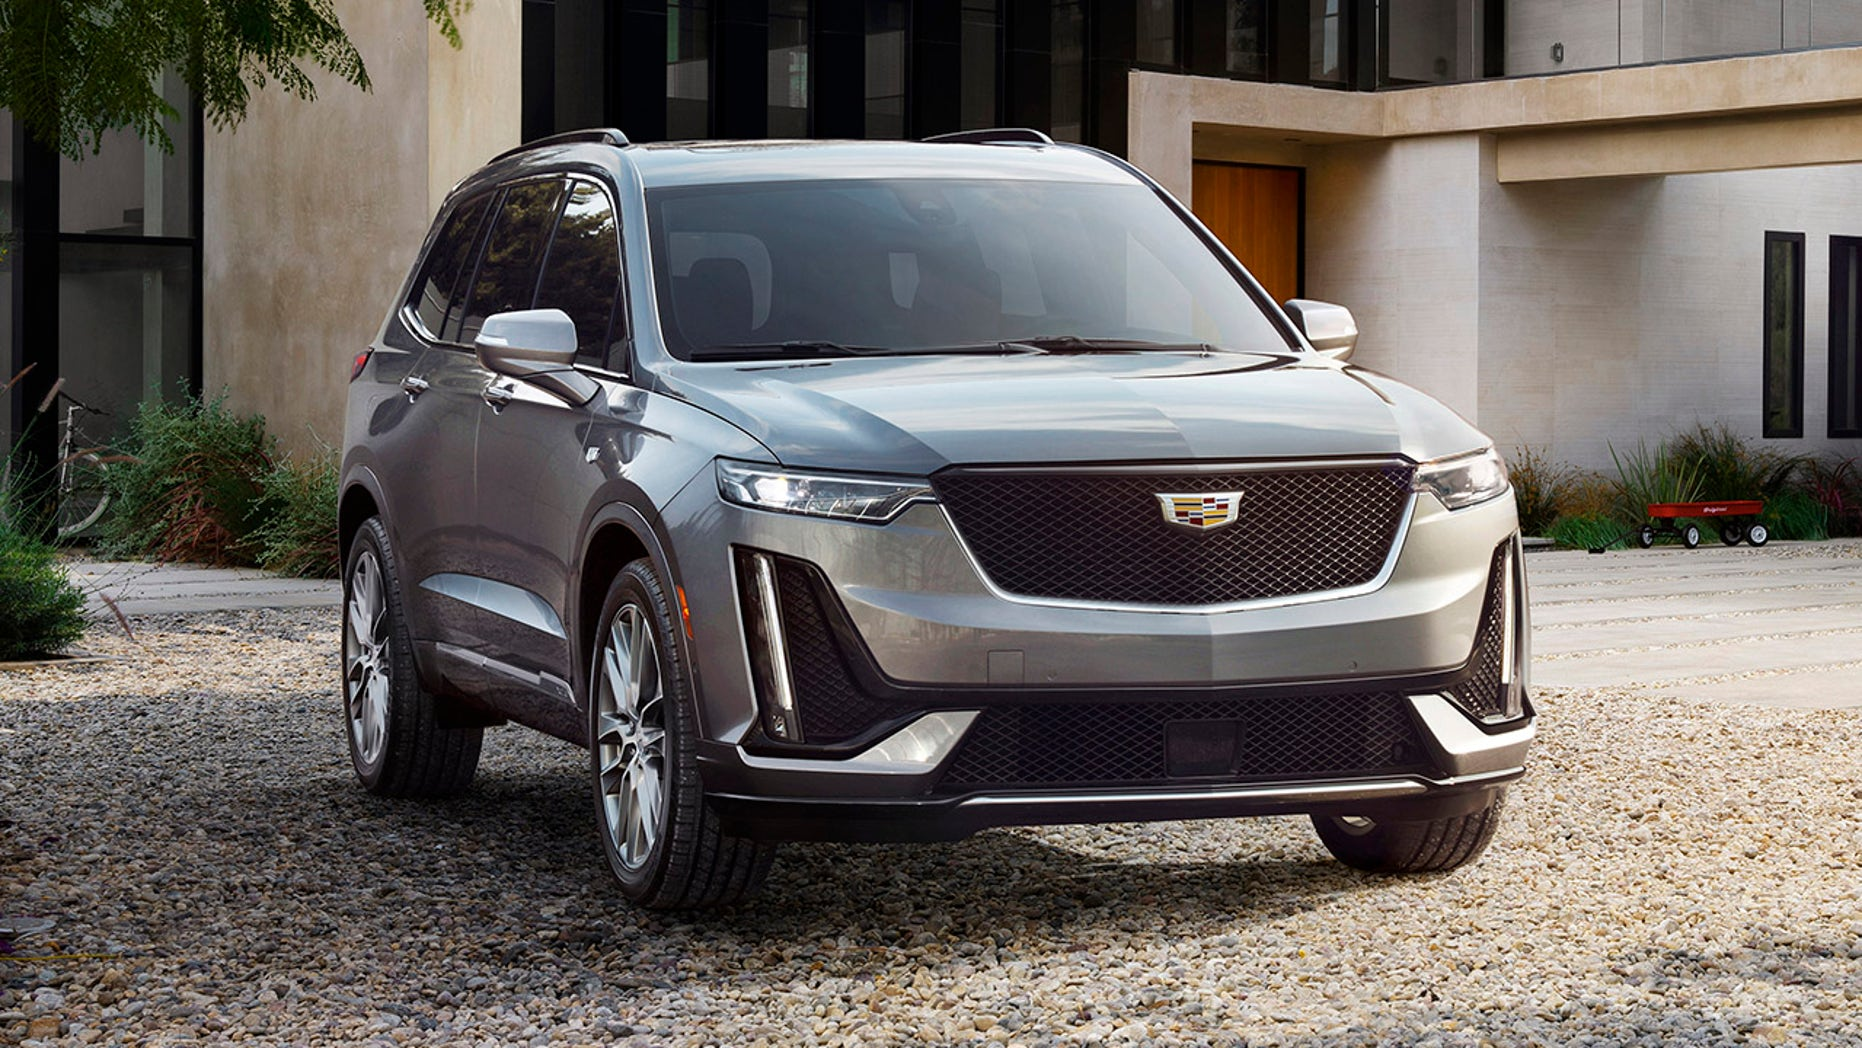 Cadillac reveals its first electric vehicle